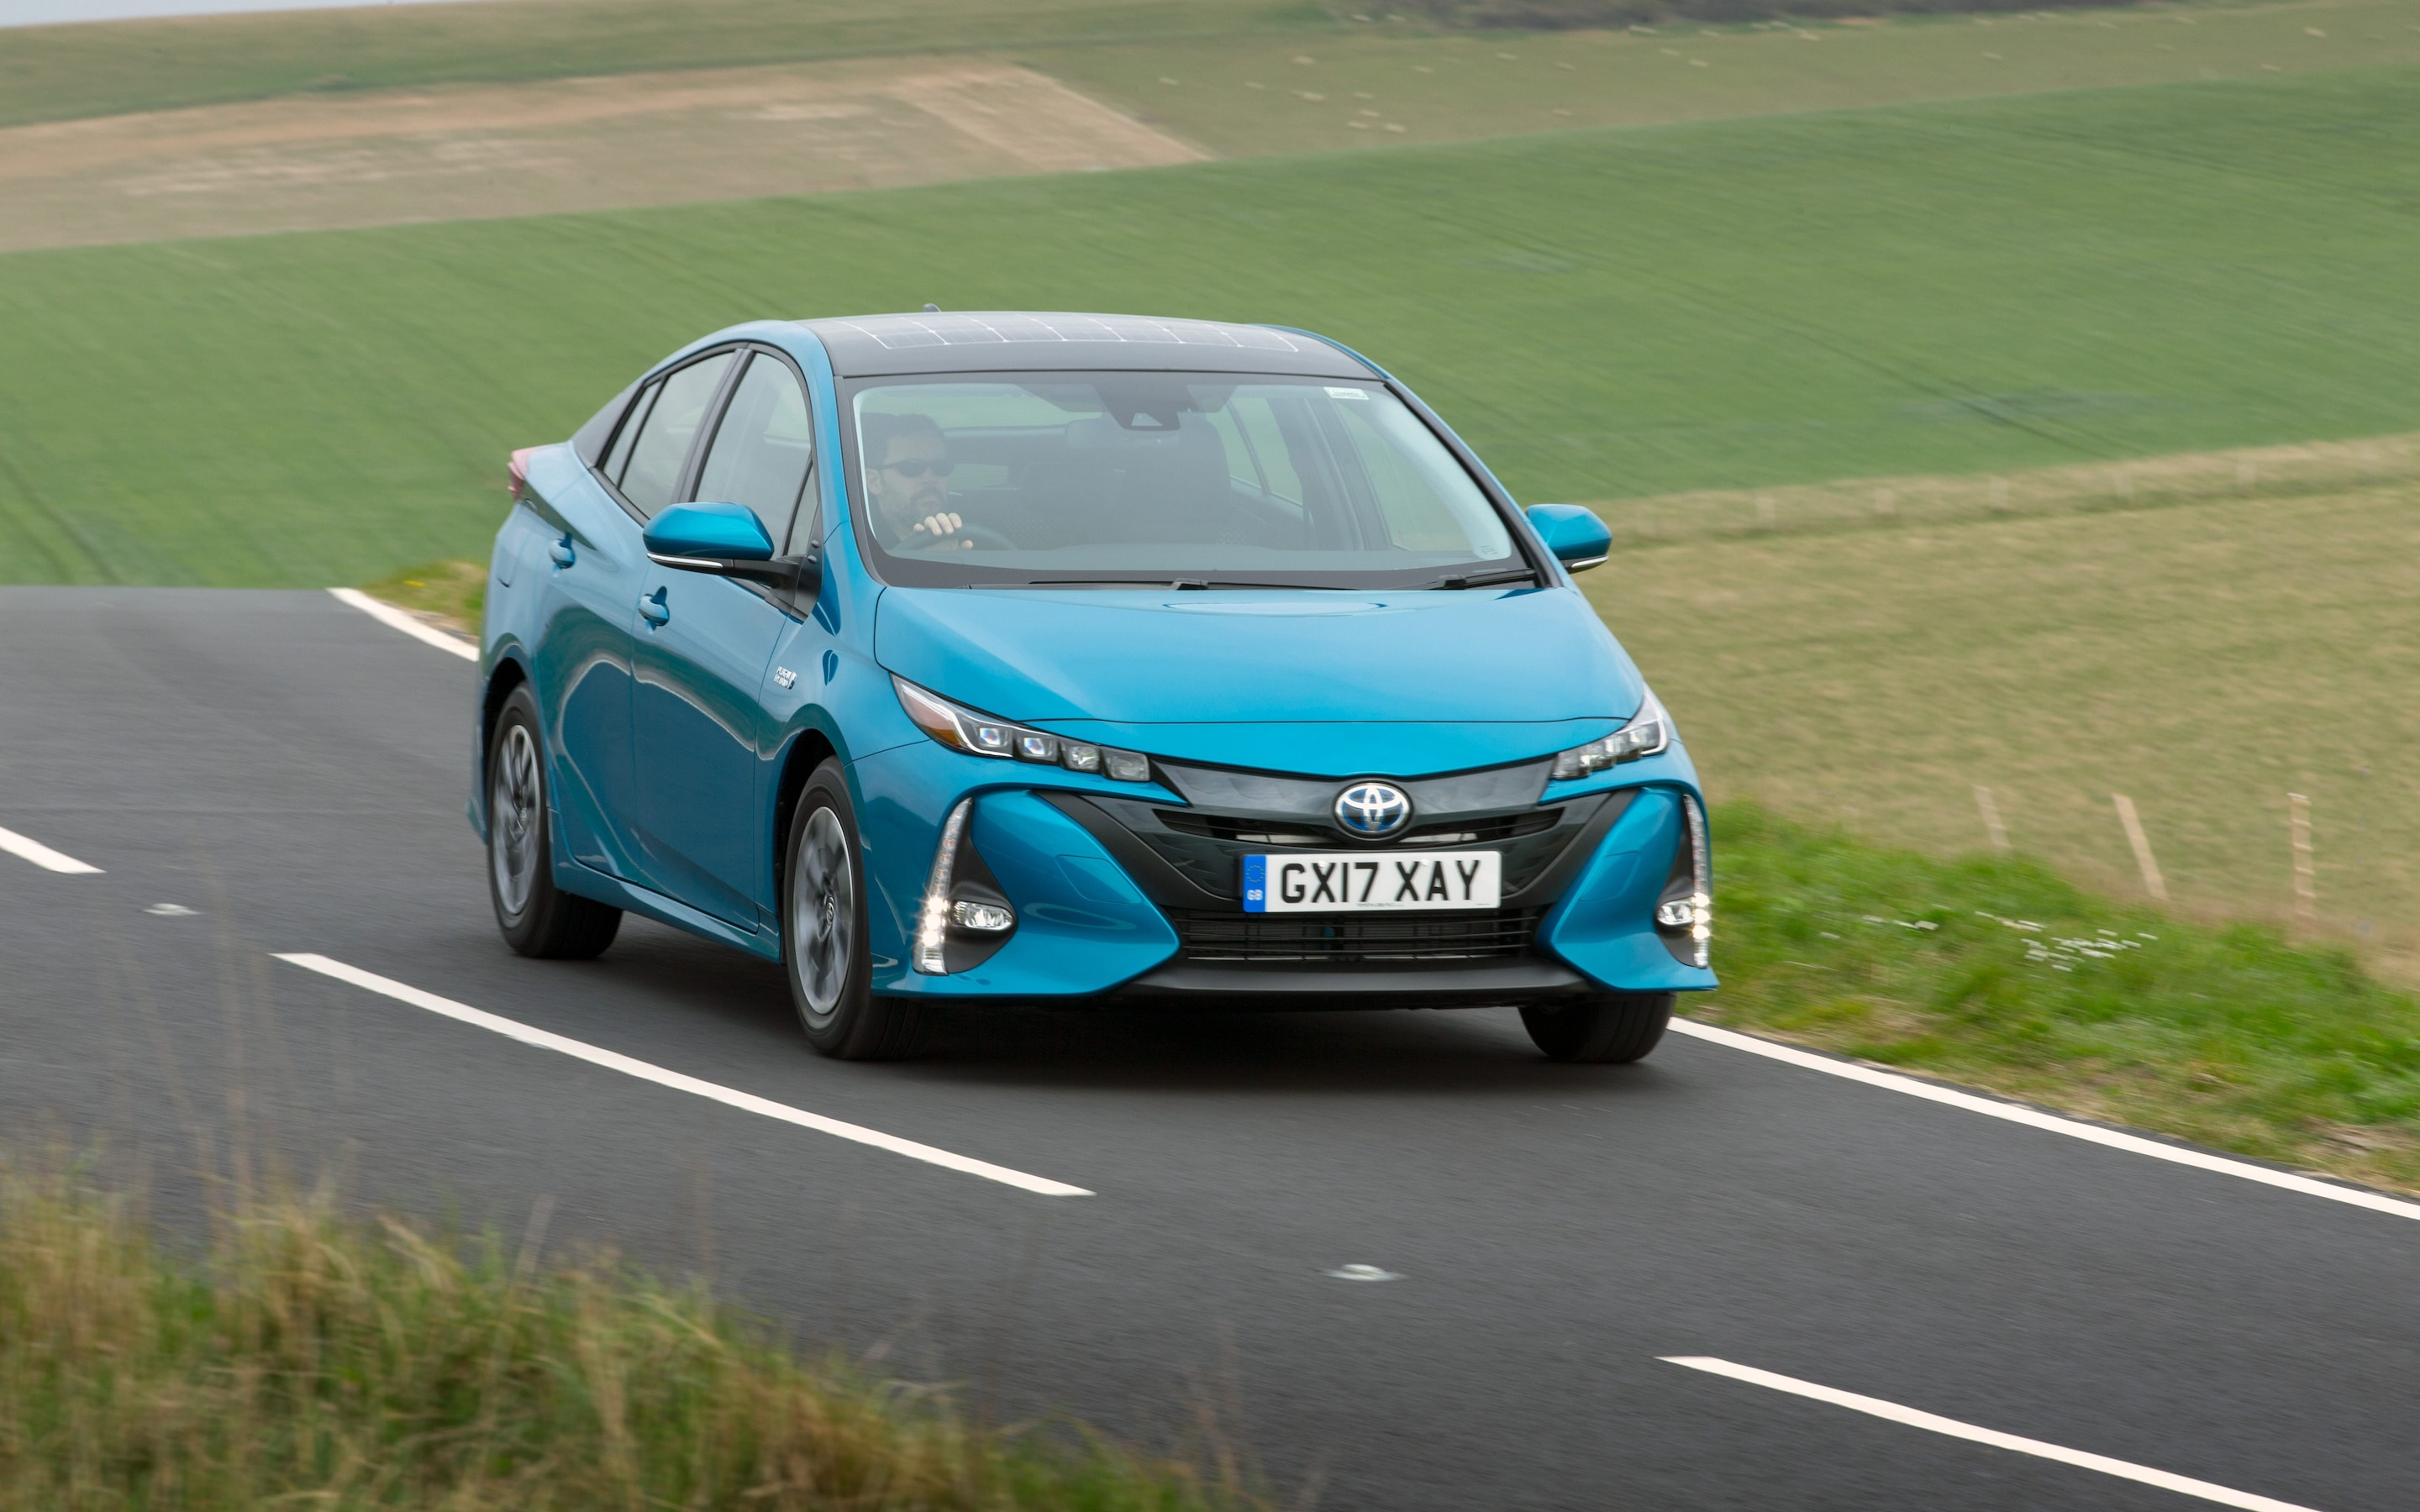 medium resolution of toyota prius review exceptional economy but is it still the toyota prius hybrid battery diagram as well toyota prius c battery